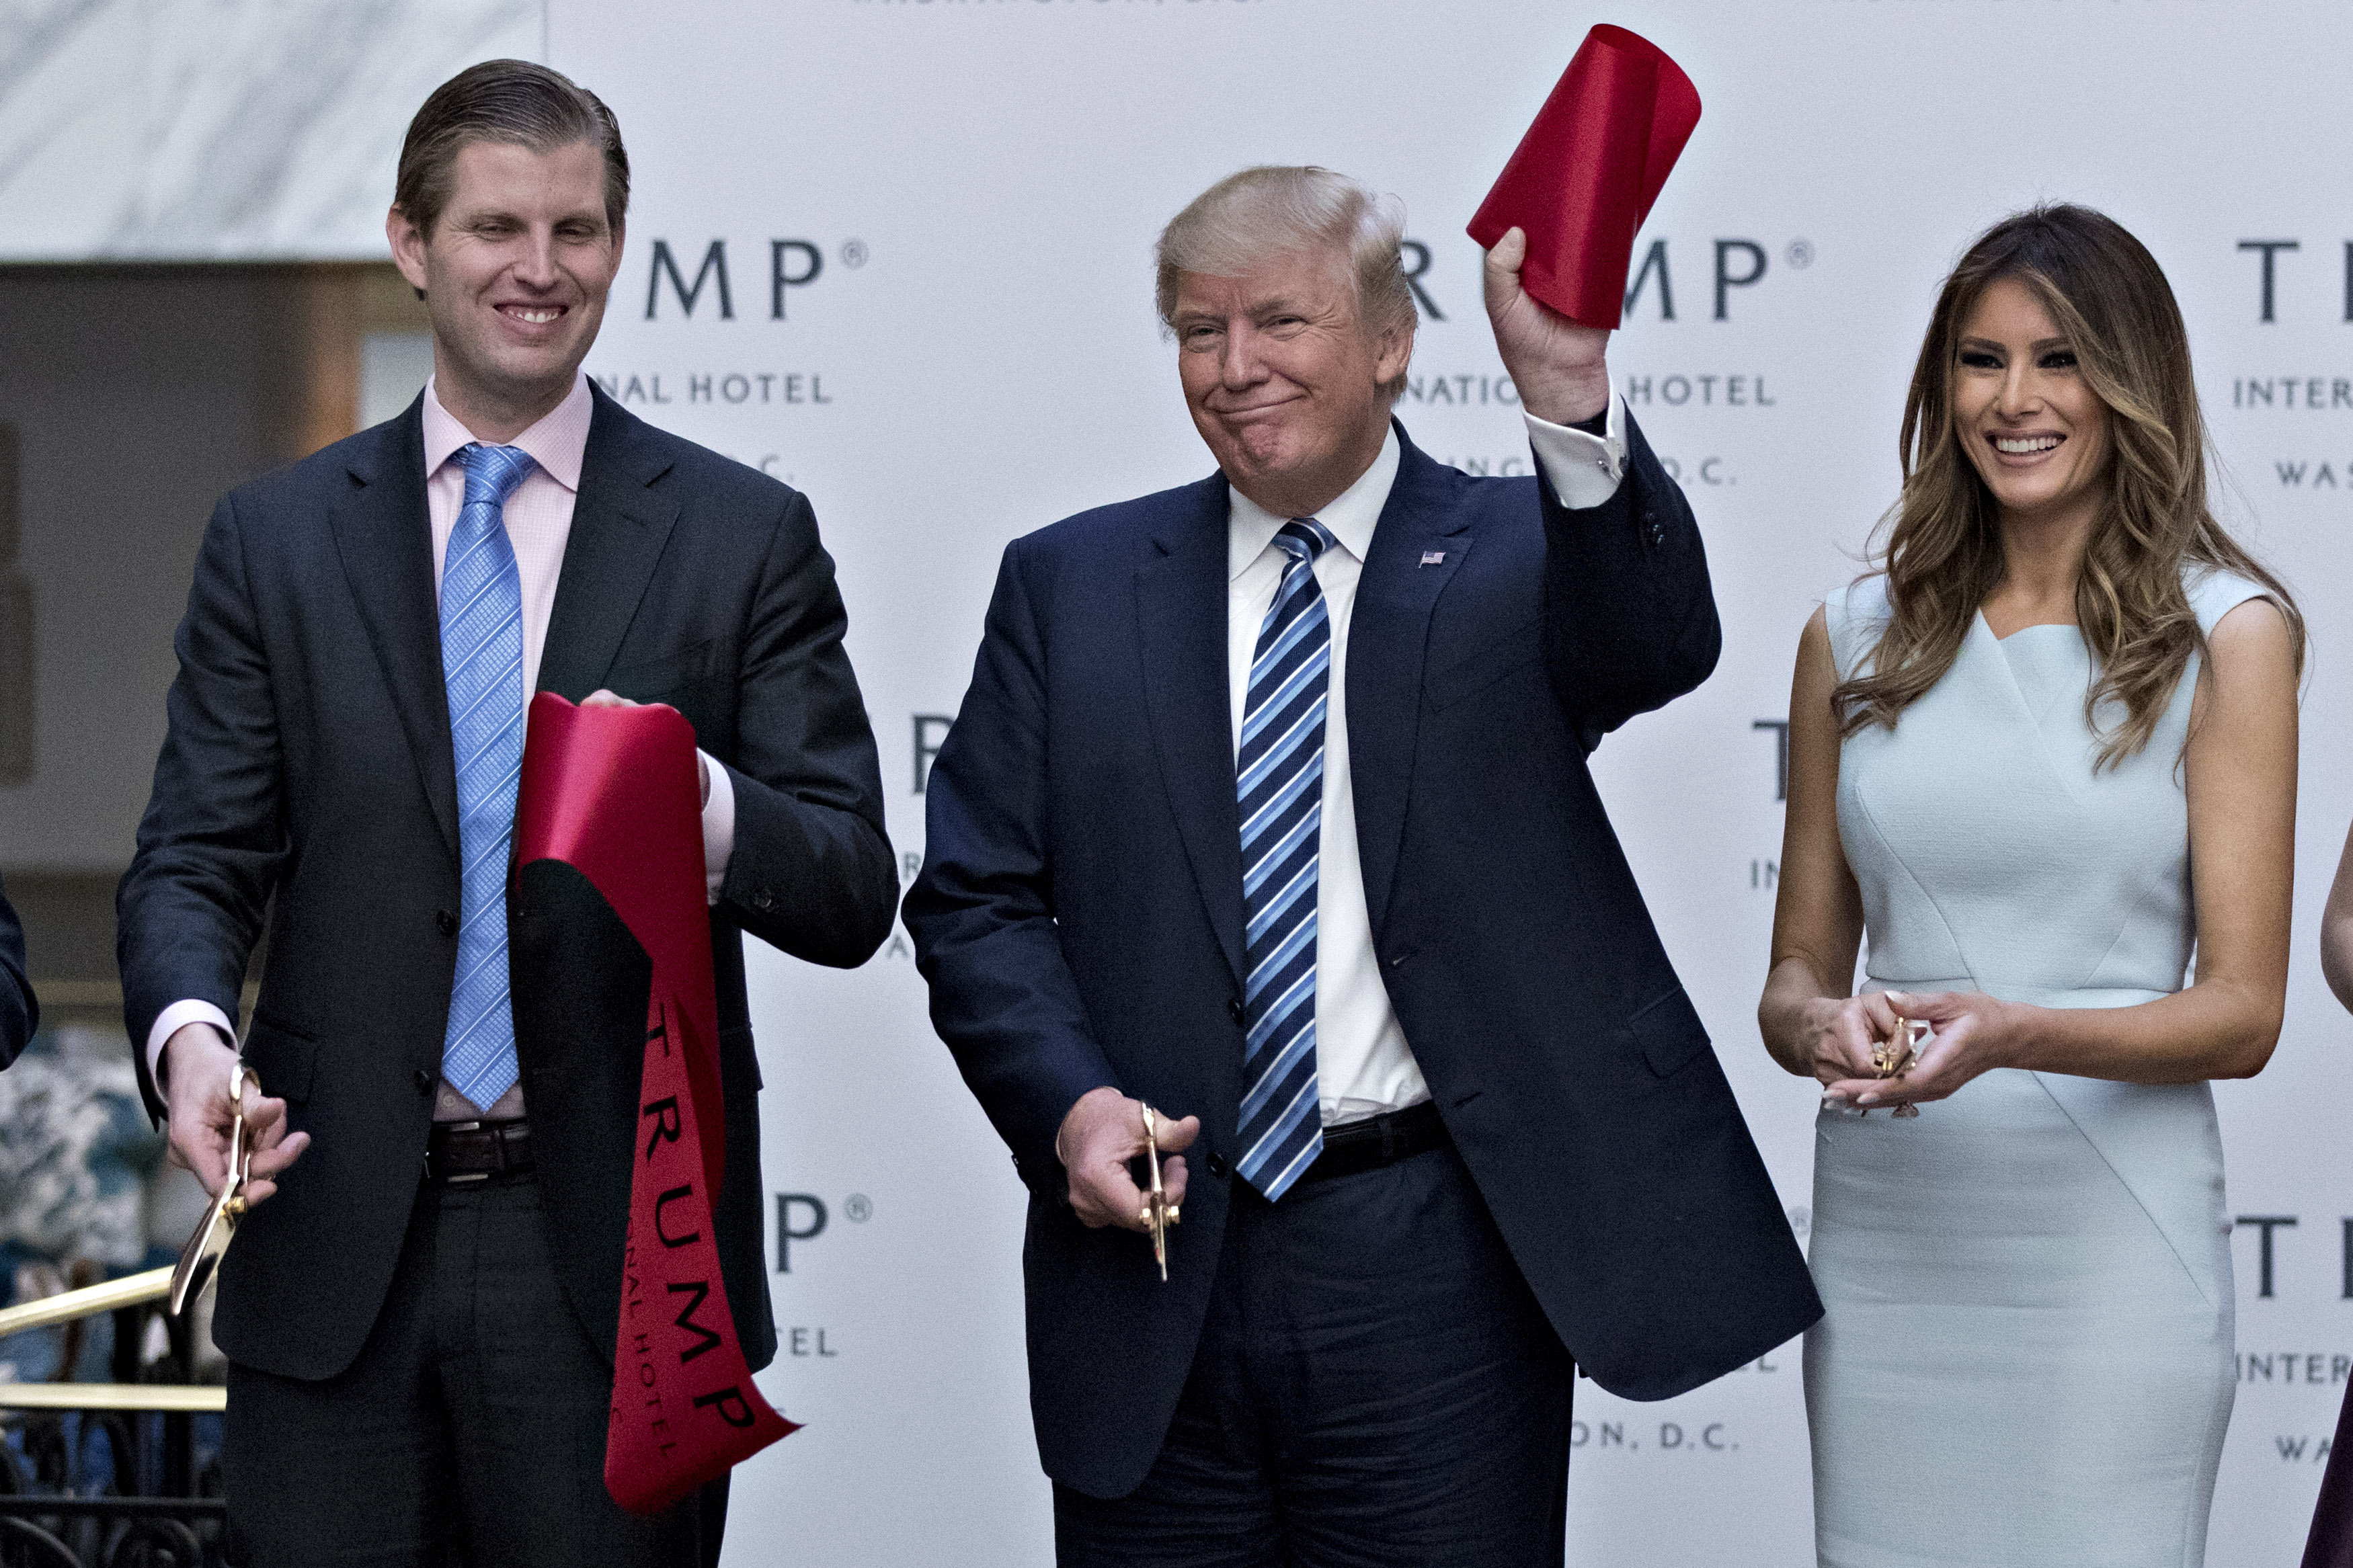 Donald Trump holds a piece of ribbon next to his wife Melania Trump, right, and his son Eric Trump during the grand opening ceremony of the Trump International Hotel in Washington, D.C., U.S., on Wednesday, Oct. 26, 2016.